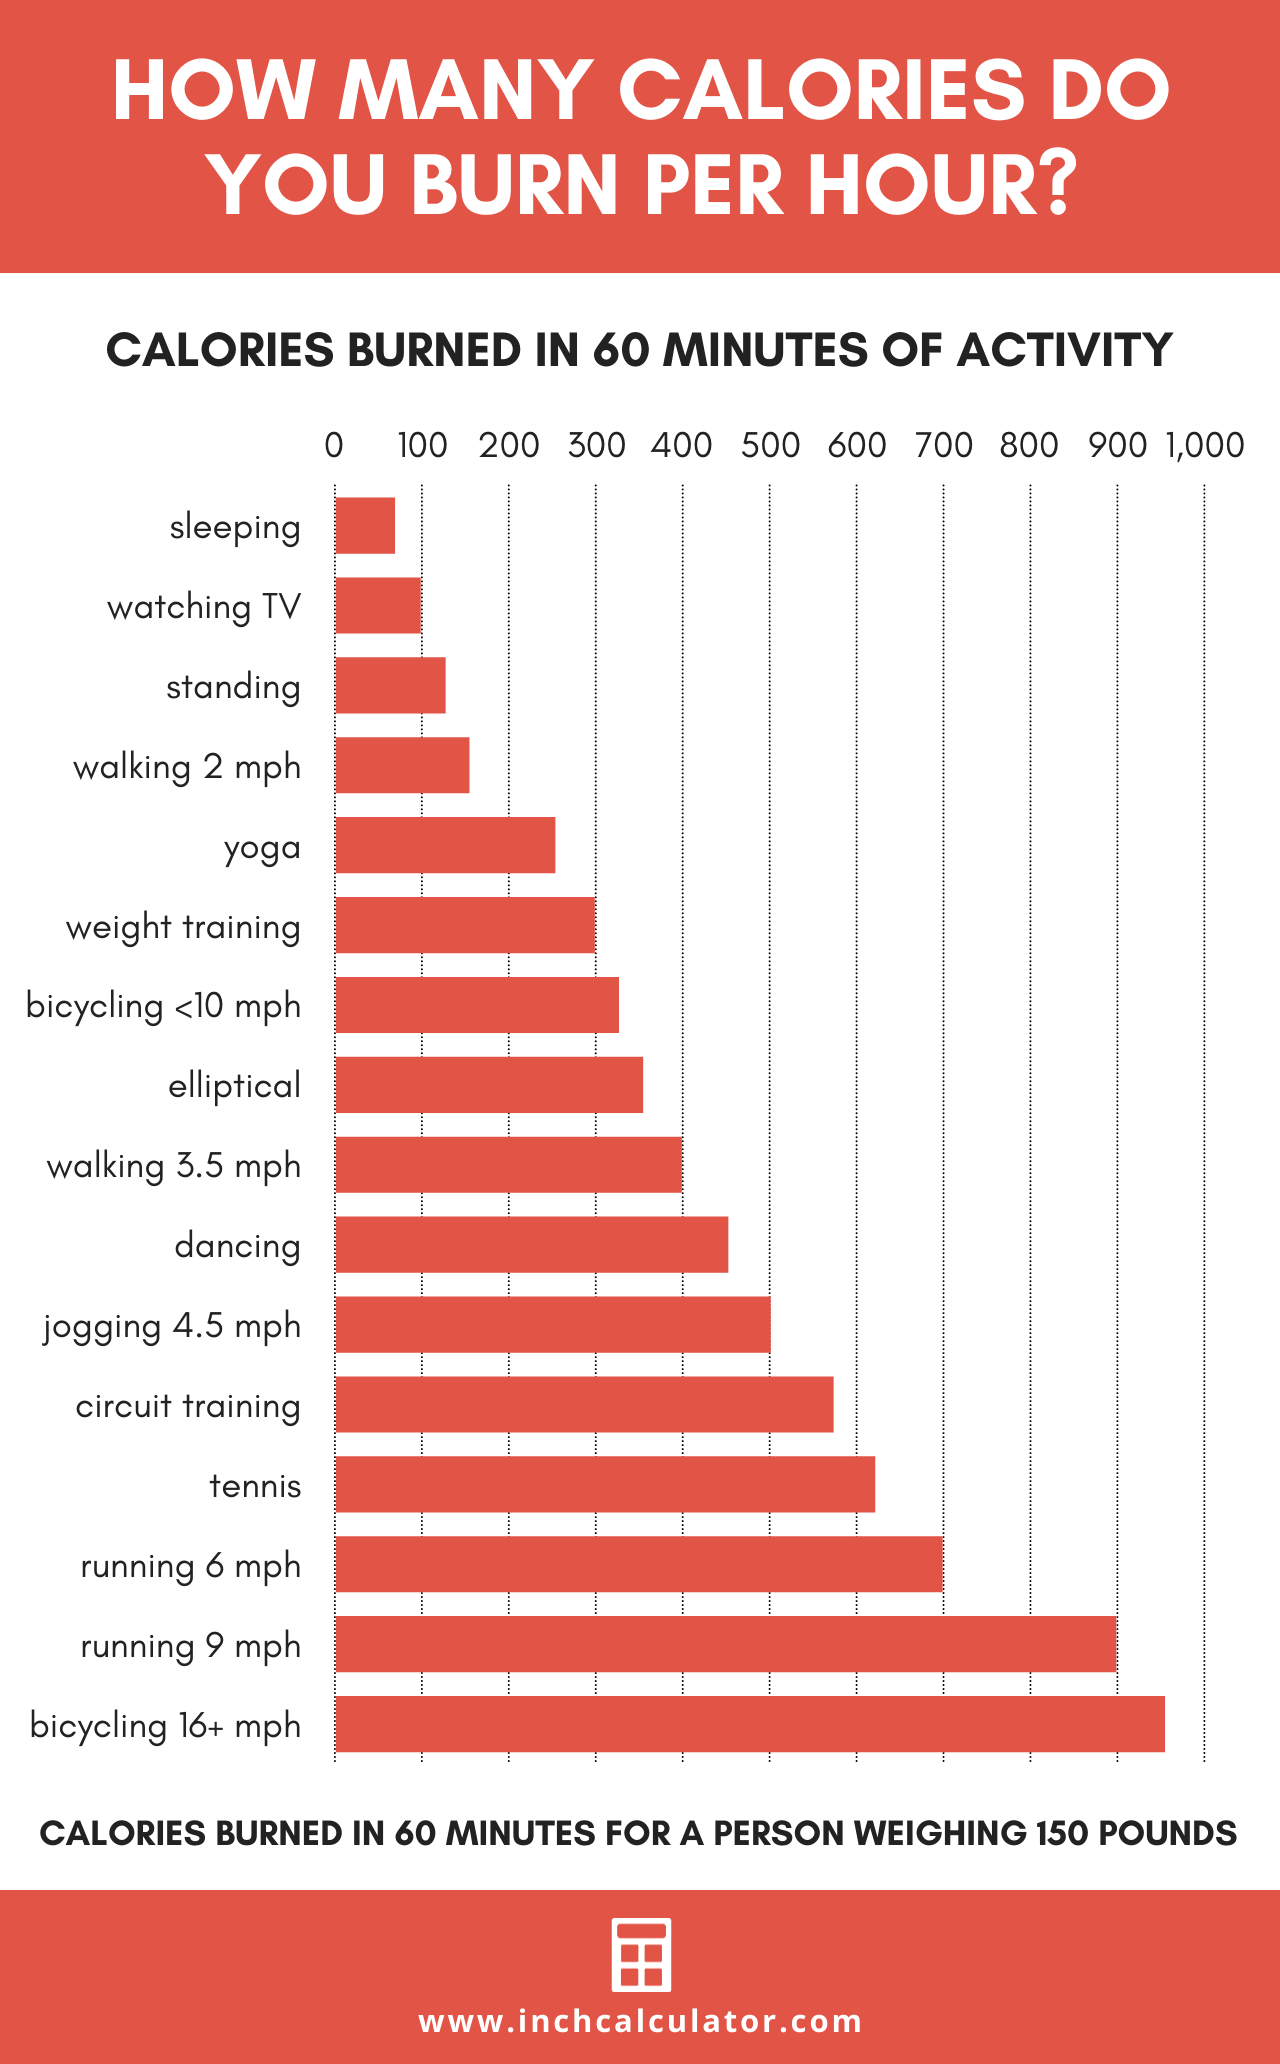 chart showing the number of calories burned in 60 minutes for various activities